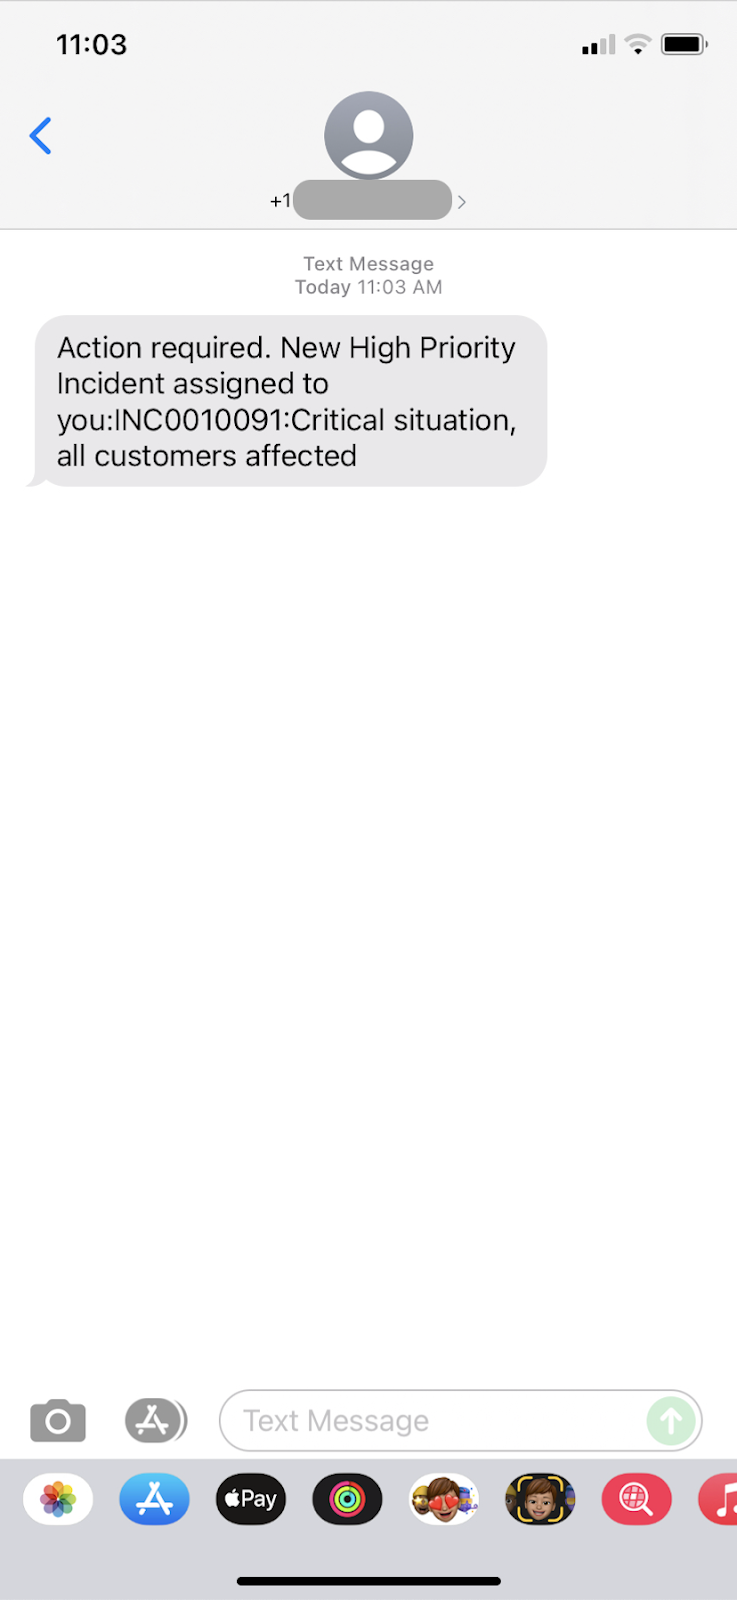 A screenshot of the SMS message sent by ServiceNow Notify